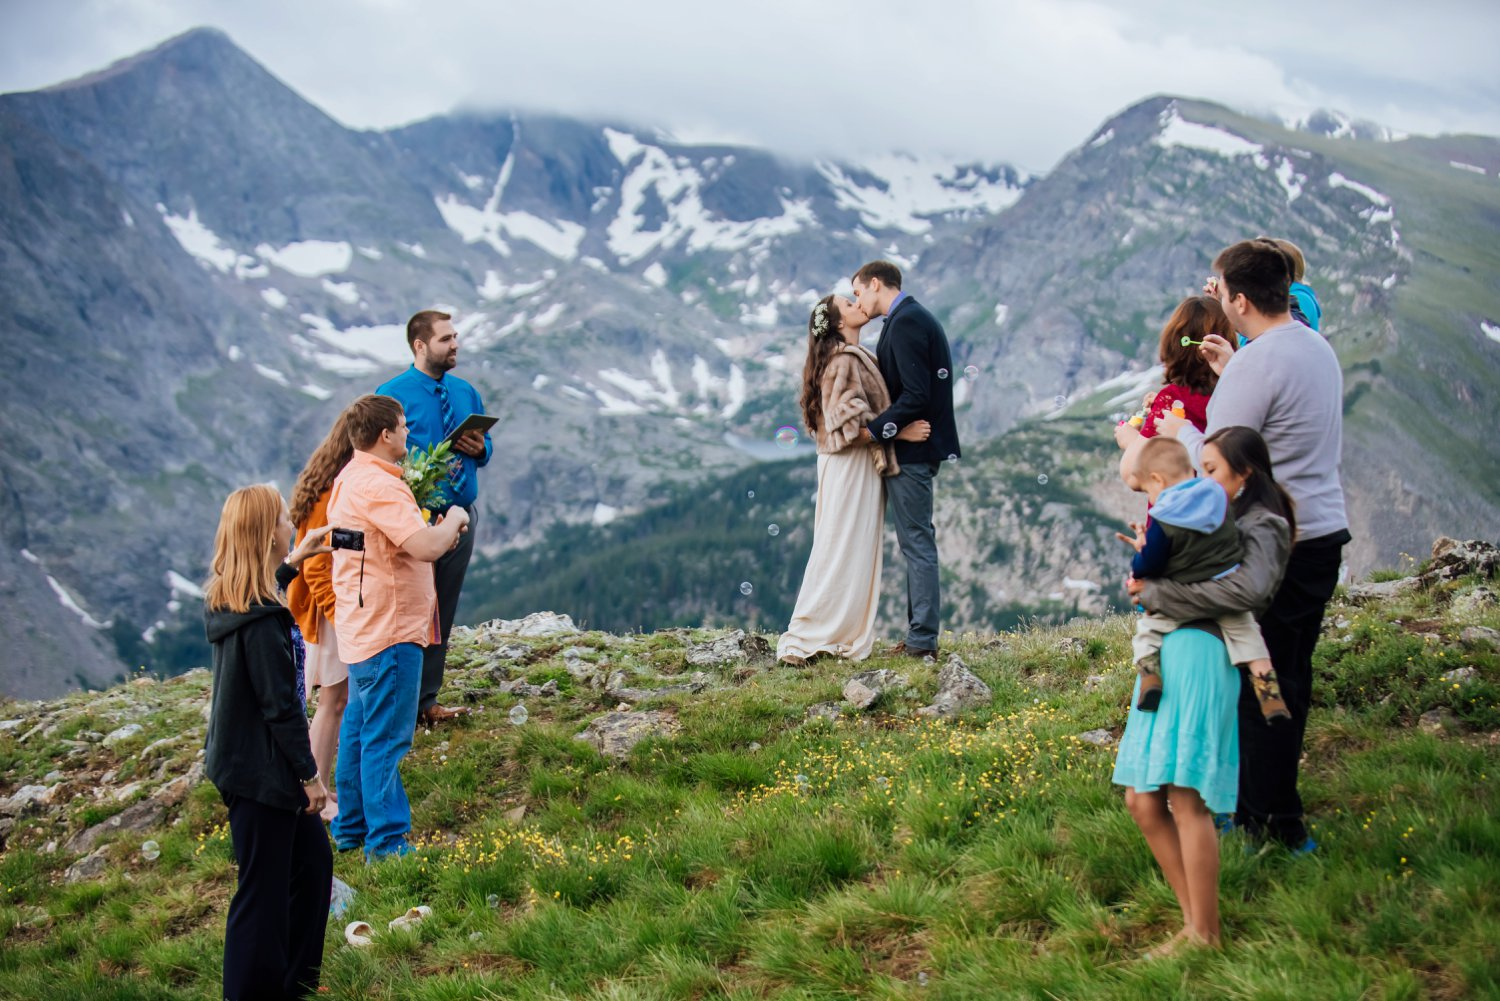 The wedding ceremony of the edge of a cliff is beautiful - I love the snow on the mountains in the background! Photo by Maddie Mae Photography